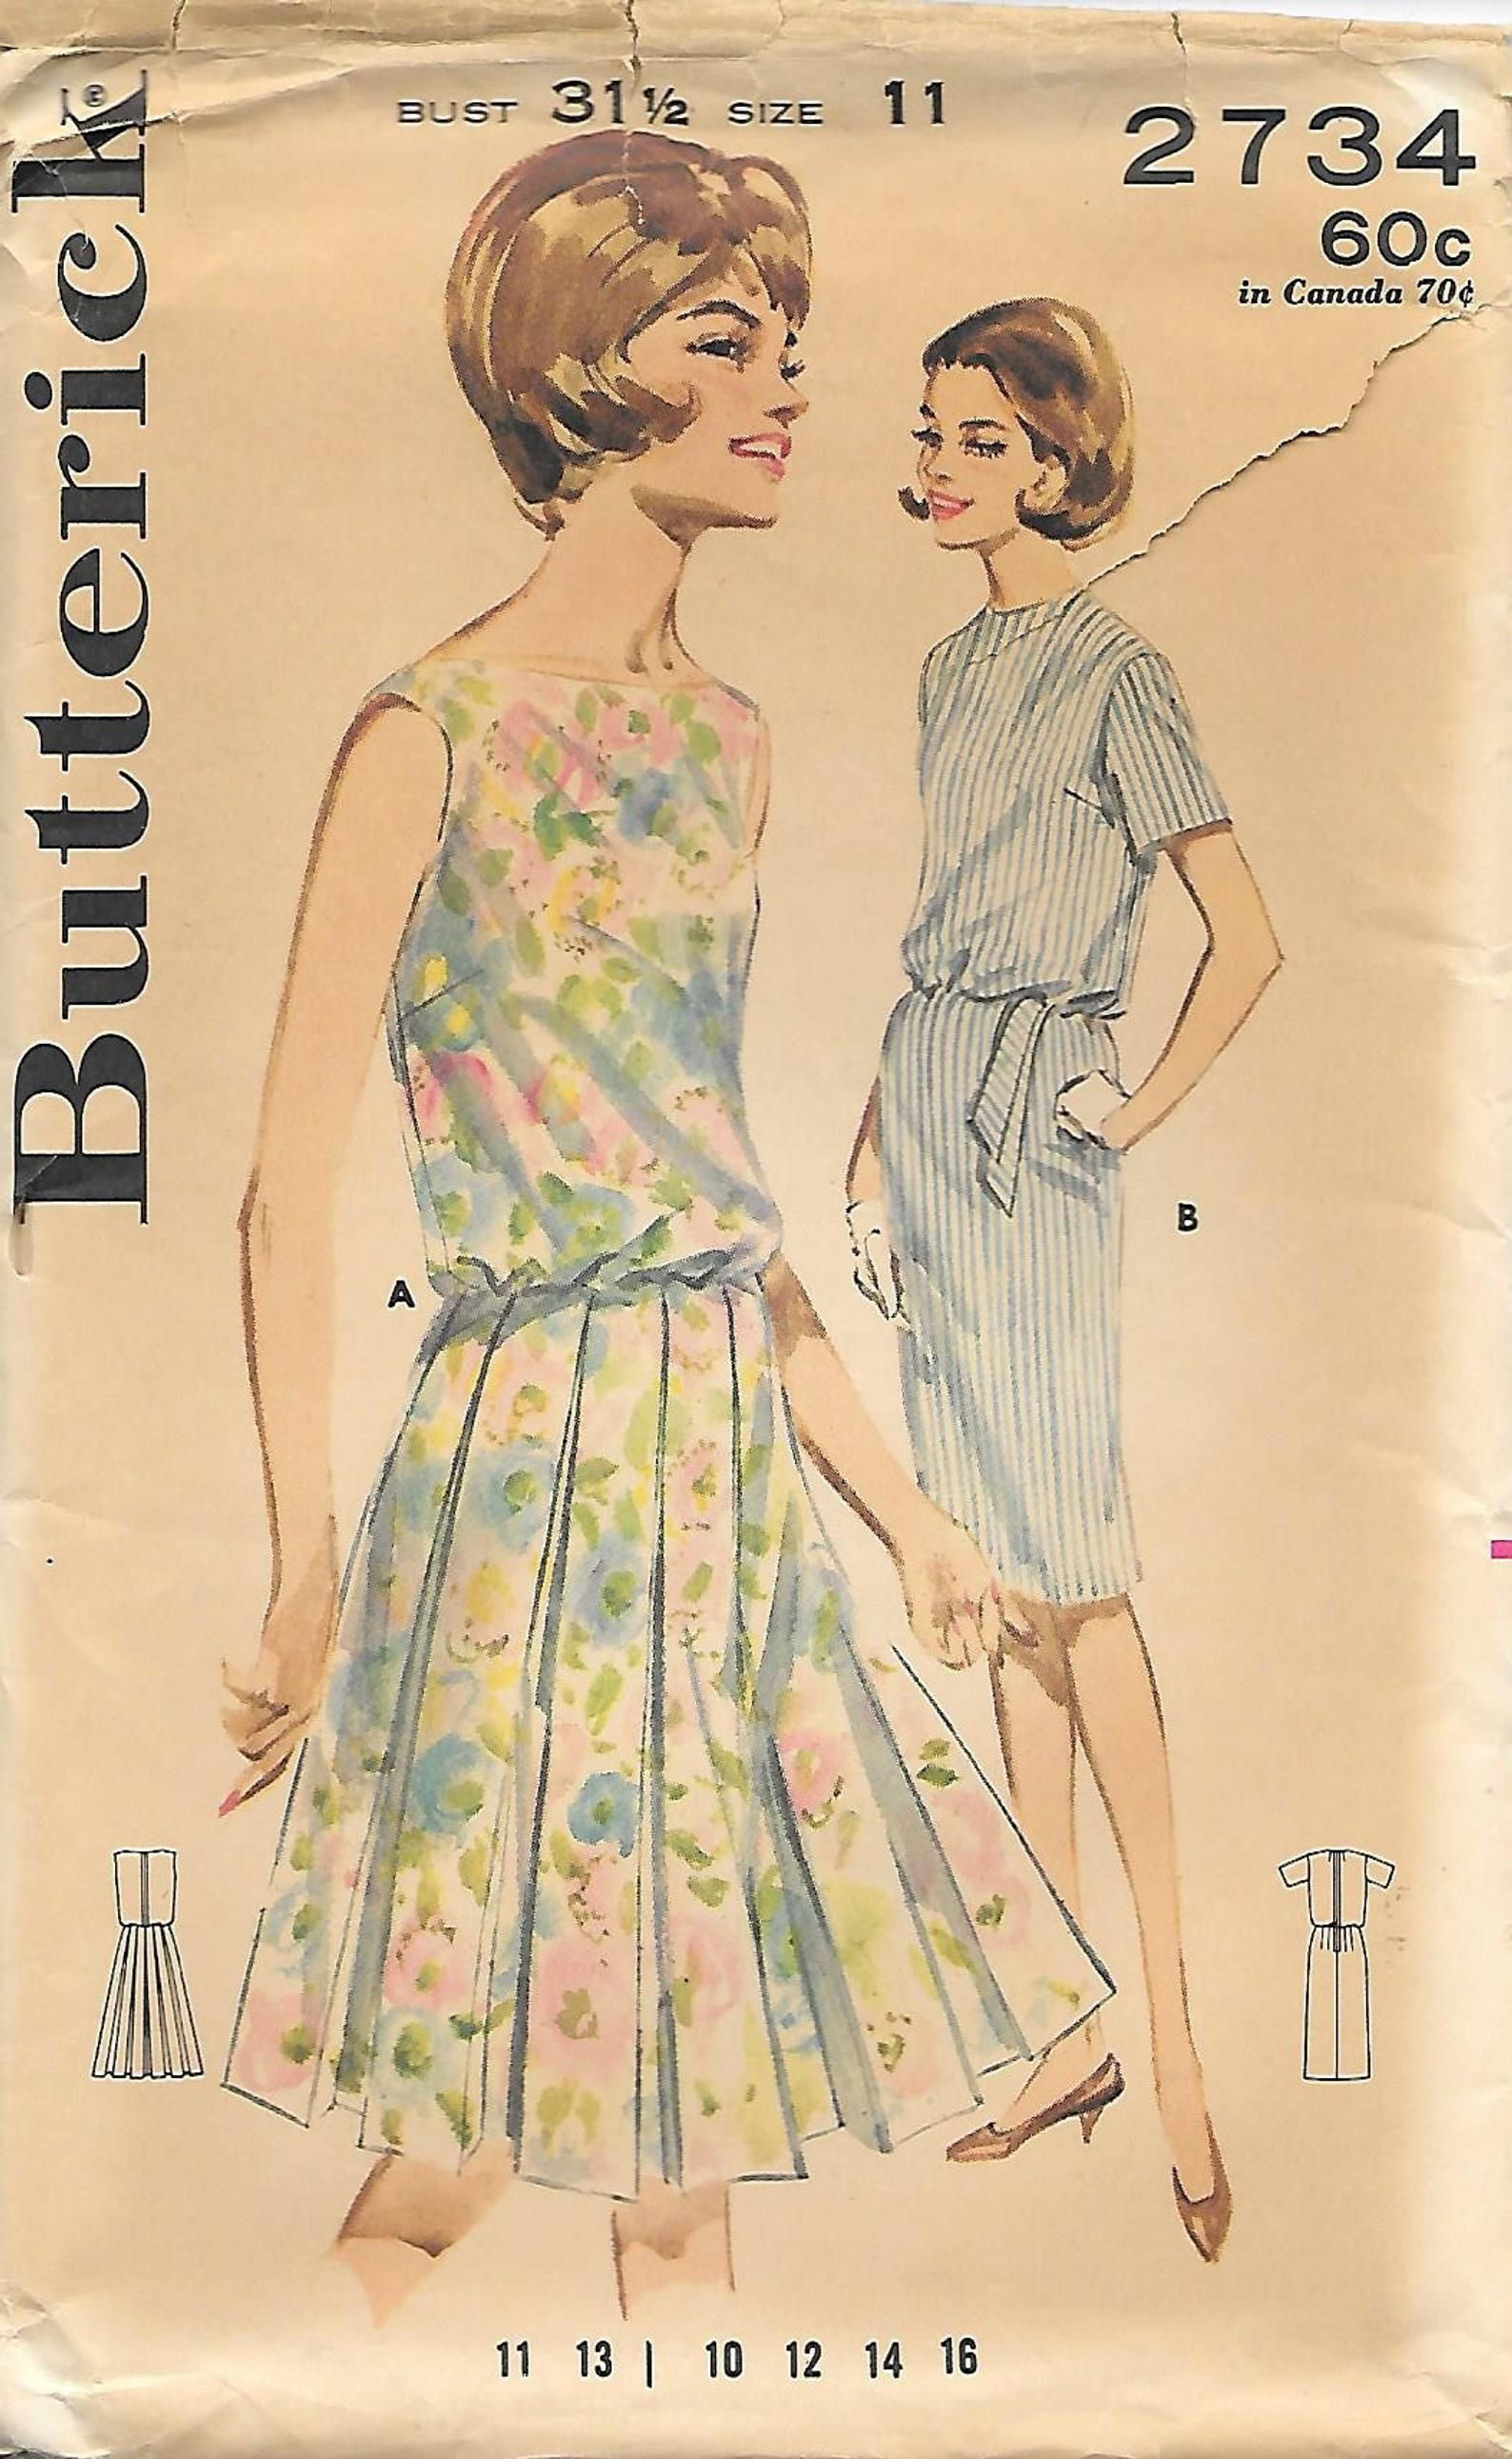 1960s Butterick 2734 Bloused Bodice Dress Vintage Sewing Pattern Bust 31 Sleeveless Pleated Skirt Uncut Ff In 2020 1960s Outfits Bodice Dress Vintage Sewing Patterns